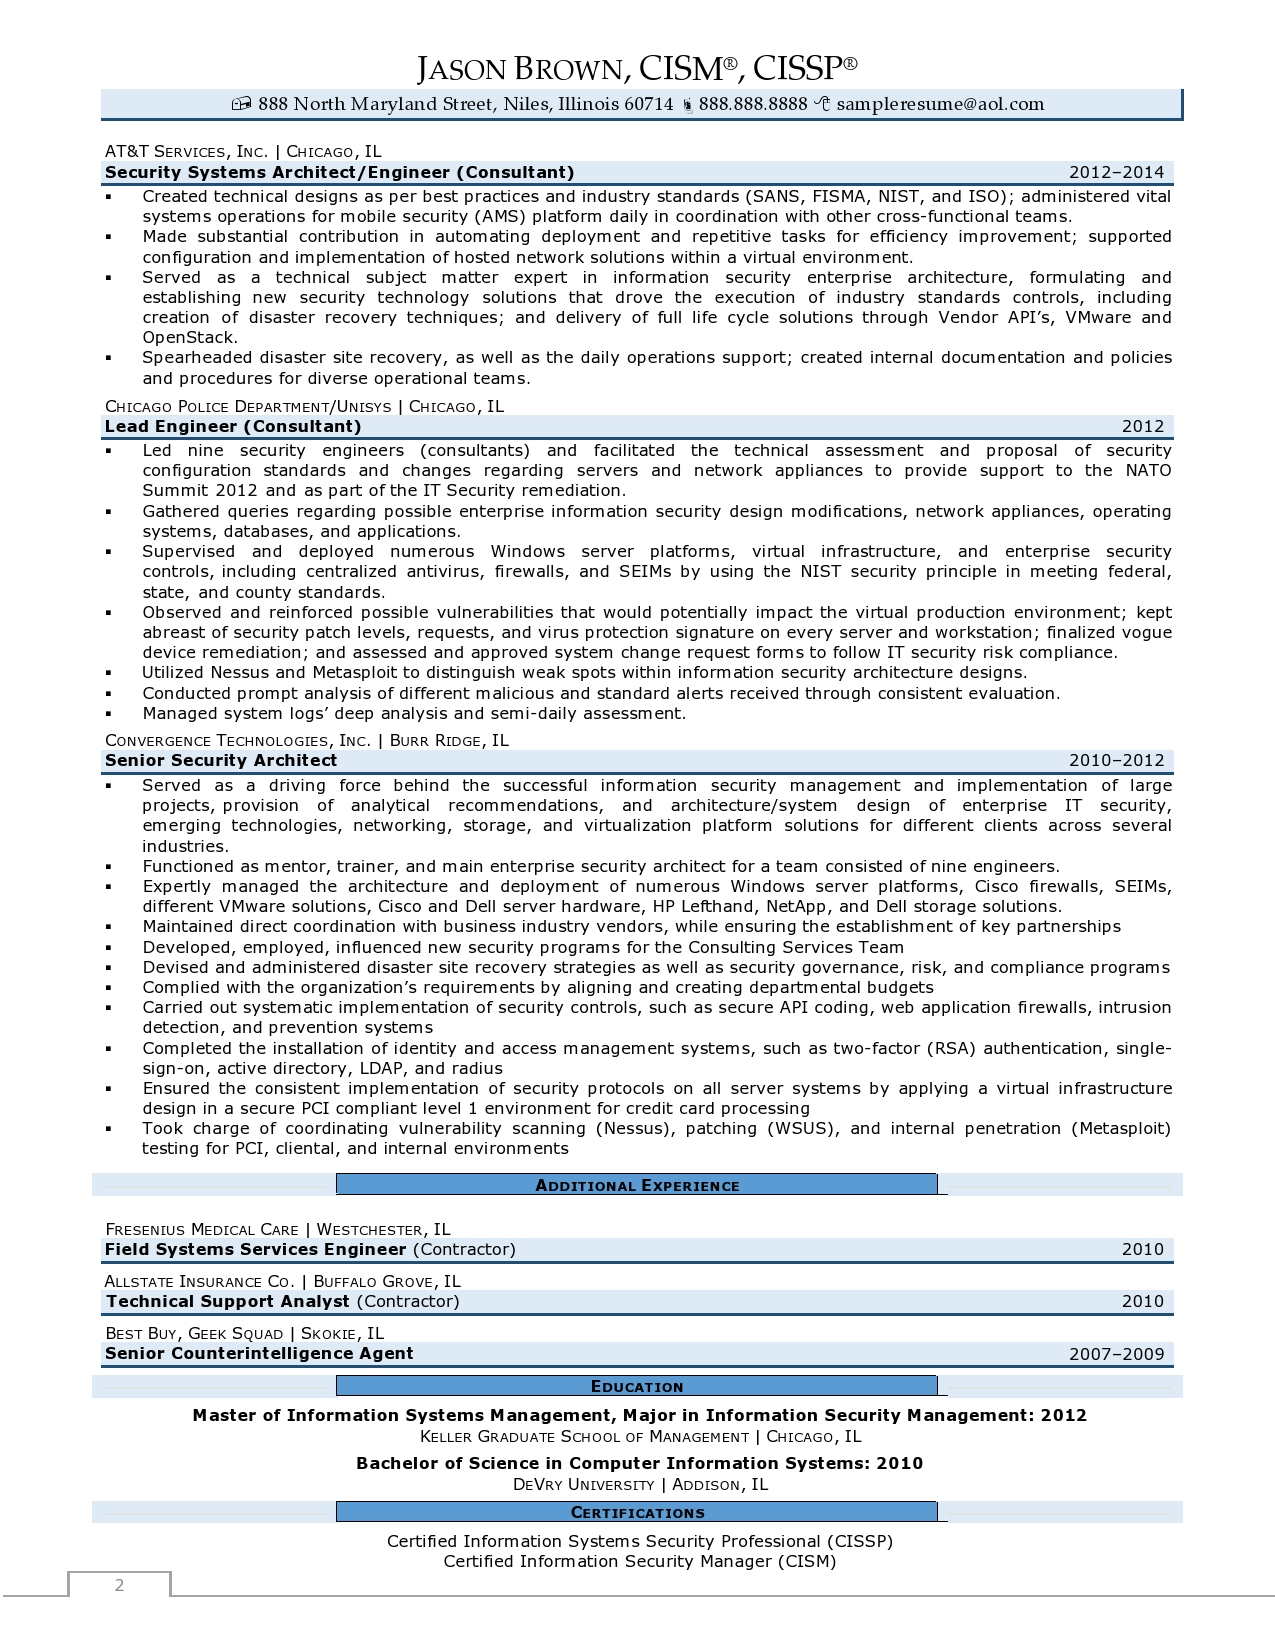 Director of Information Security Resume Examples page 2